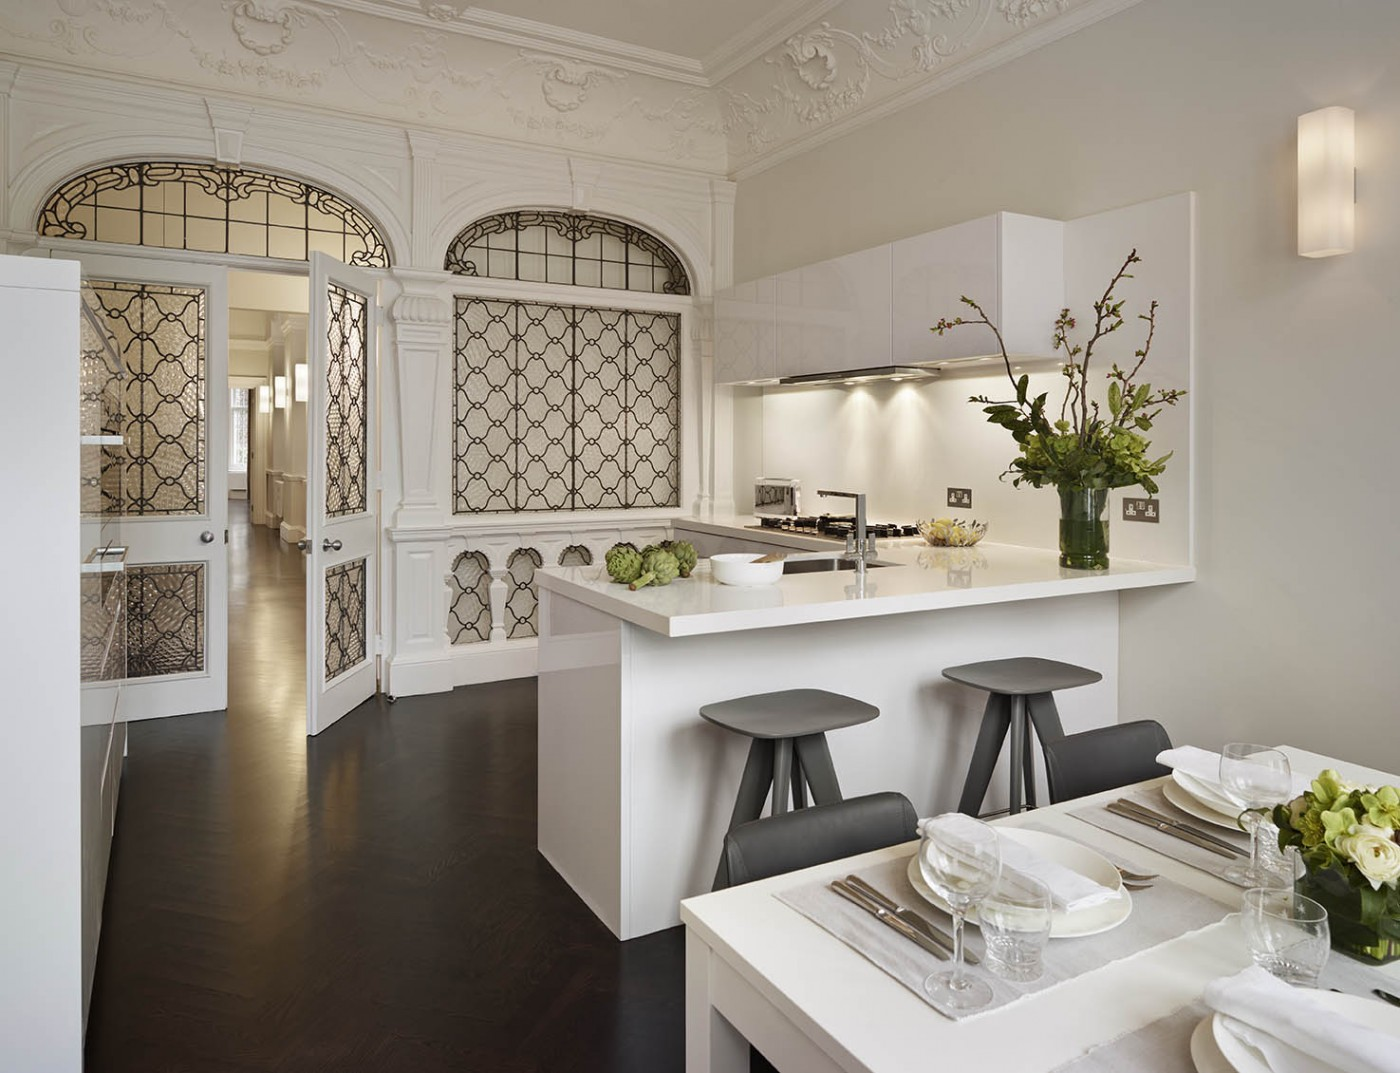 kitchen design knightsbridge knightsbridge kitchen specifications luxury kitchen 560